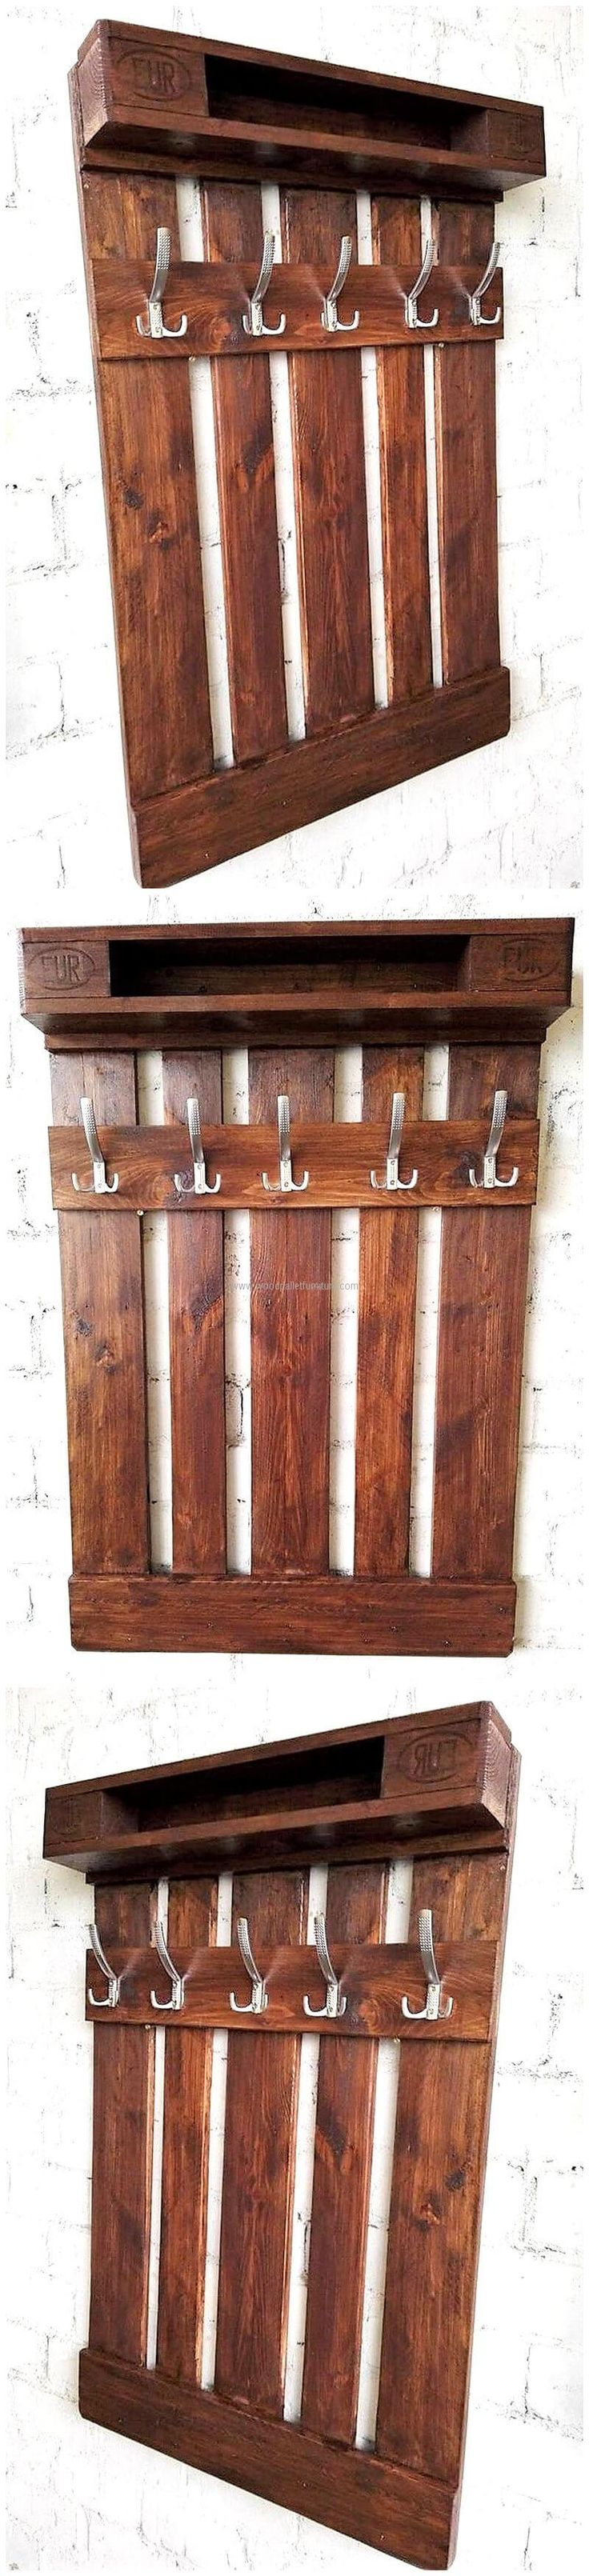 Hanger is needed in every home because there are clothes that are required to be hanged and the keys are also needed to be hanged to keep them on the place. So, here we have an idea of clothes hanger made up of wood pallets, which is sophisticated in looks.